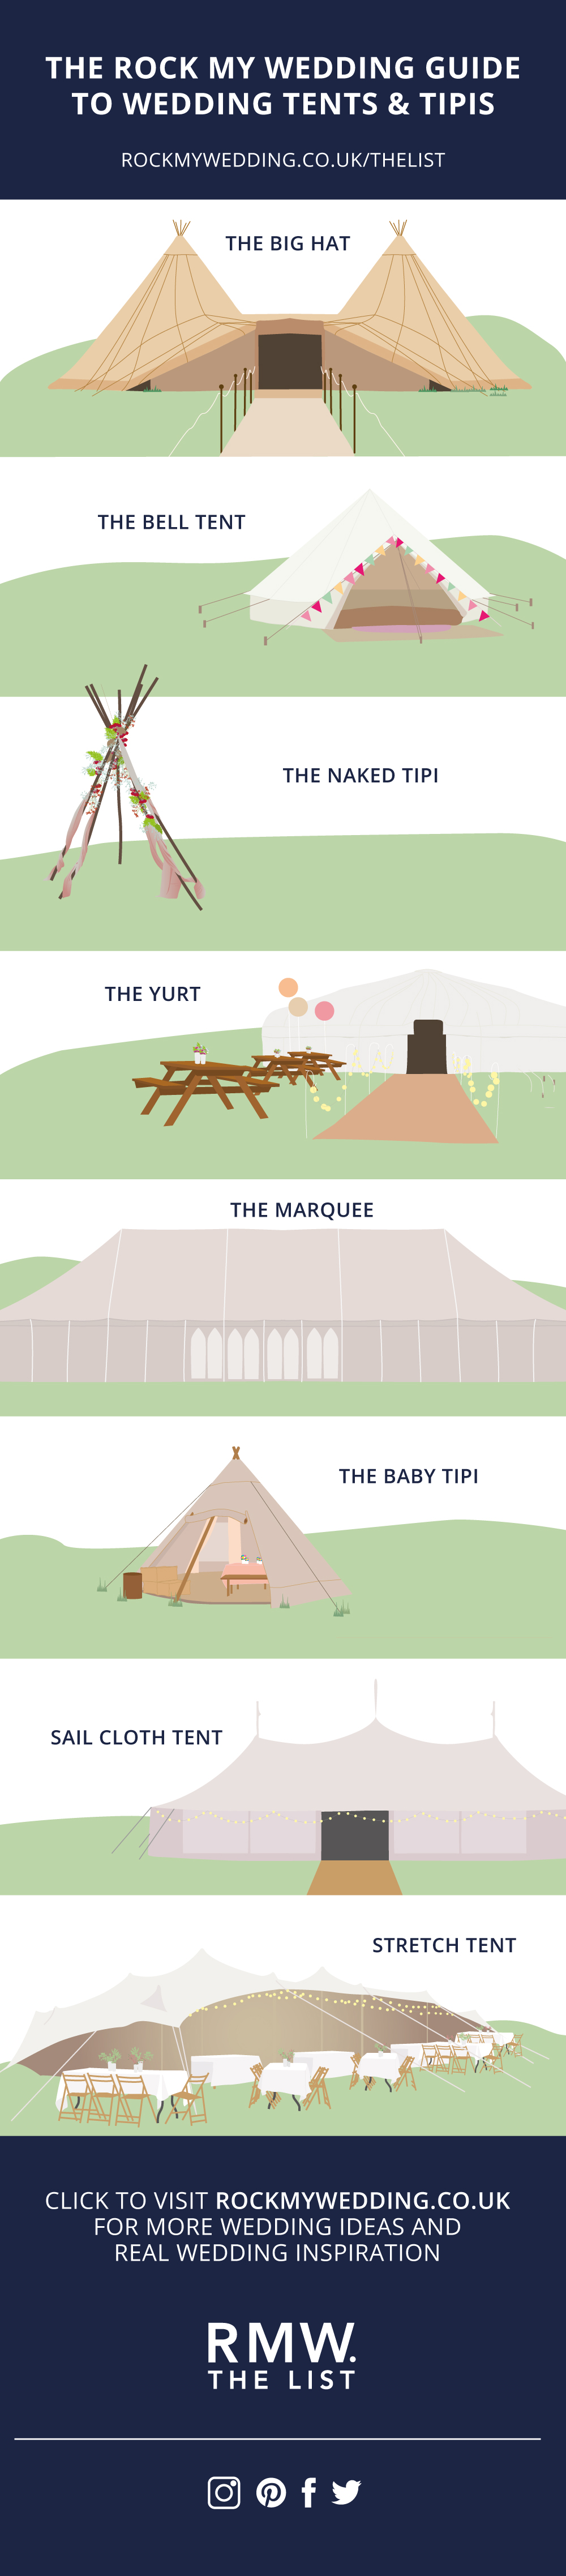 Wedding Tents, Tipis and Marquees from The List